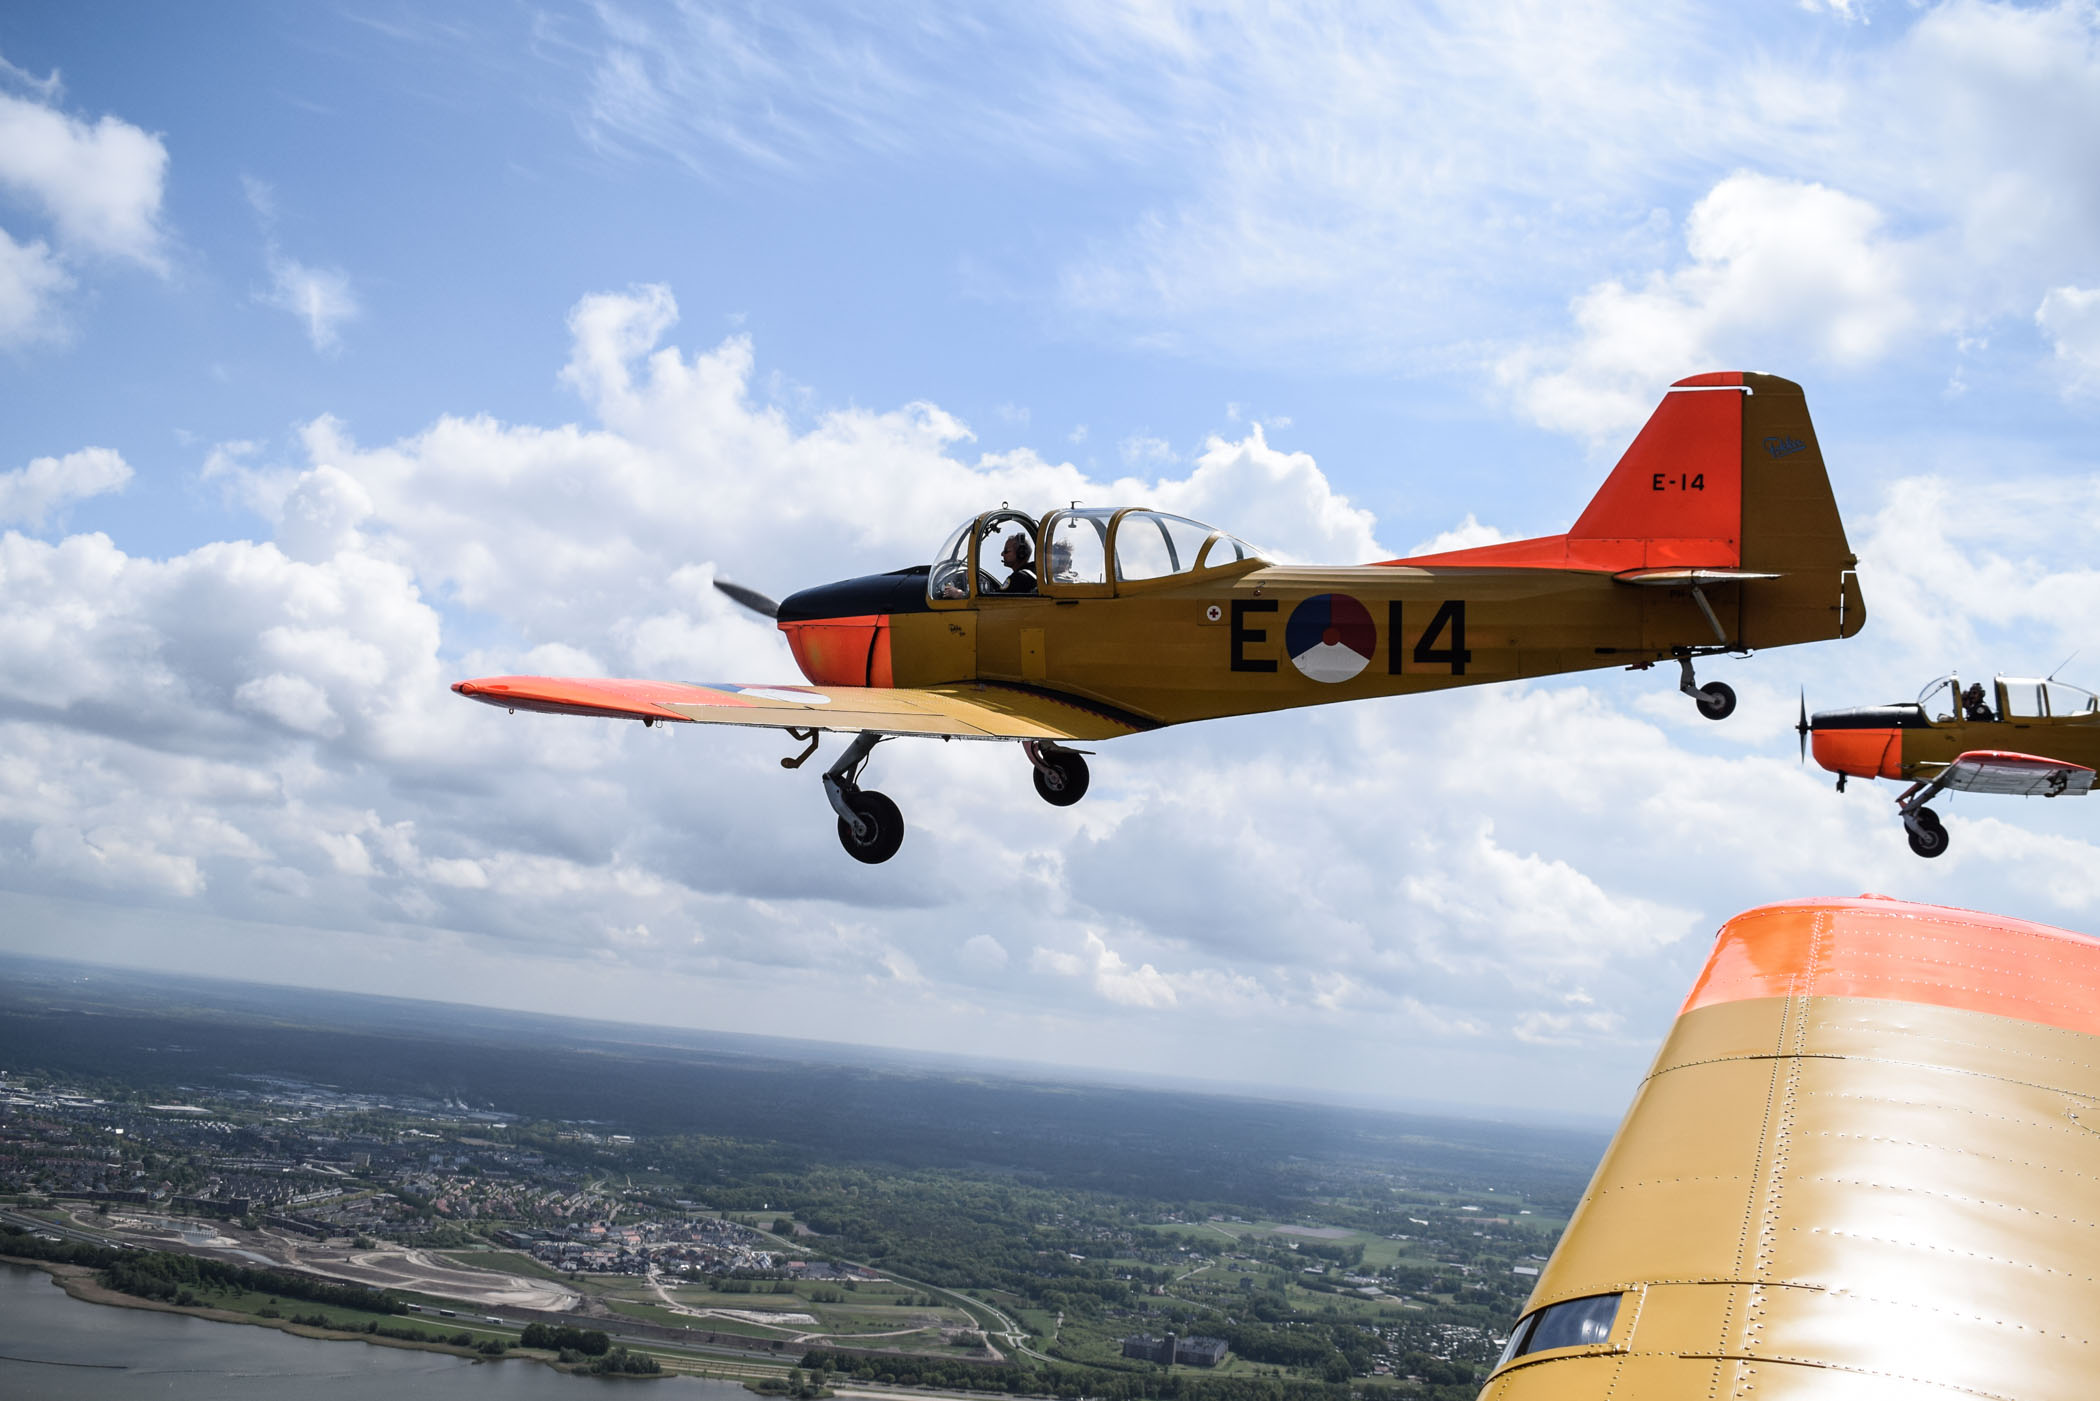 Up in the air with a Van der Gang Vlieger watch - 2